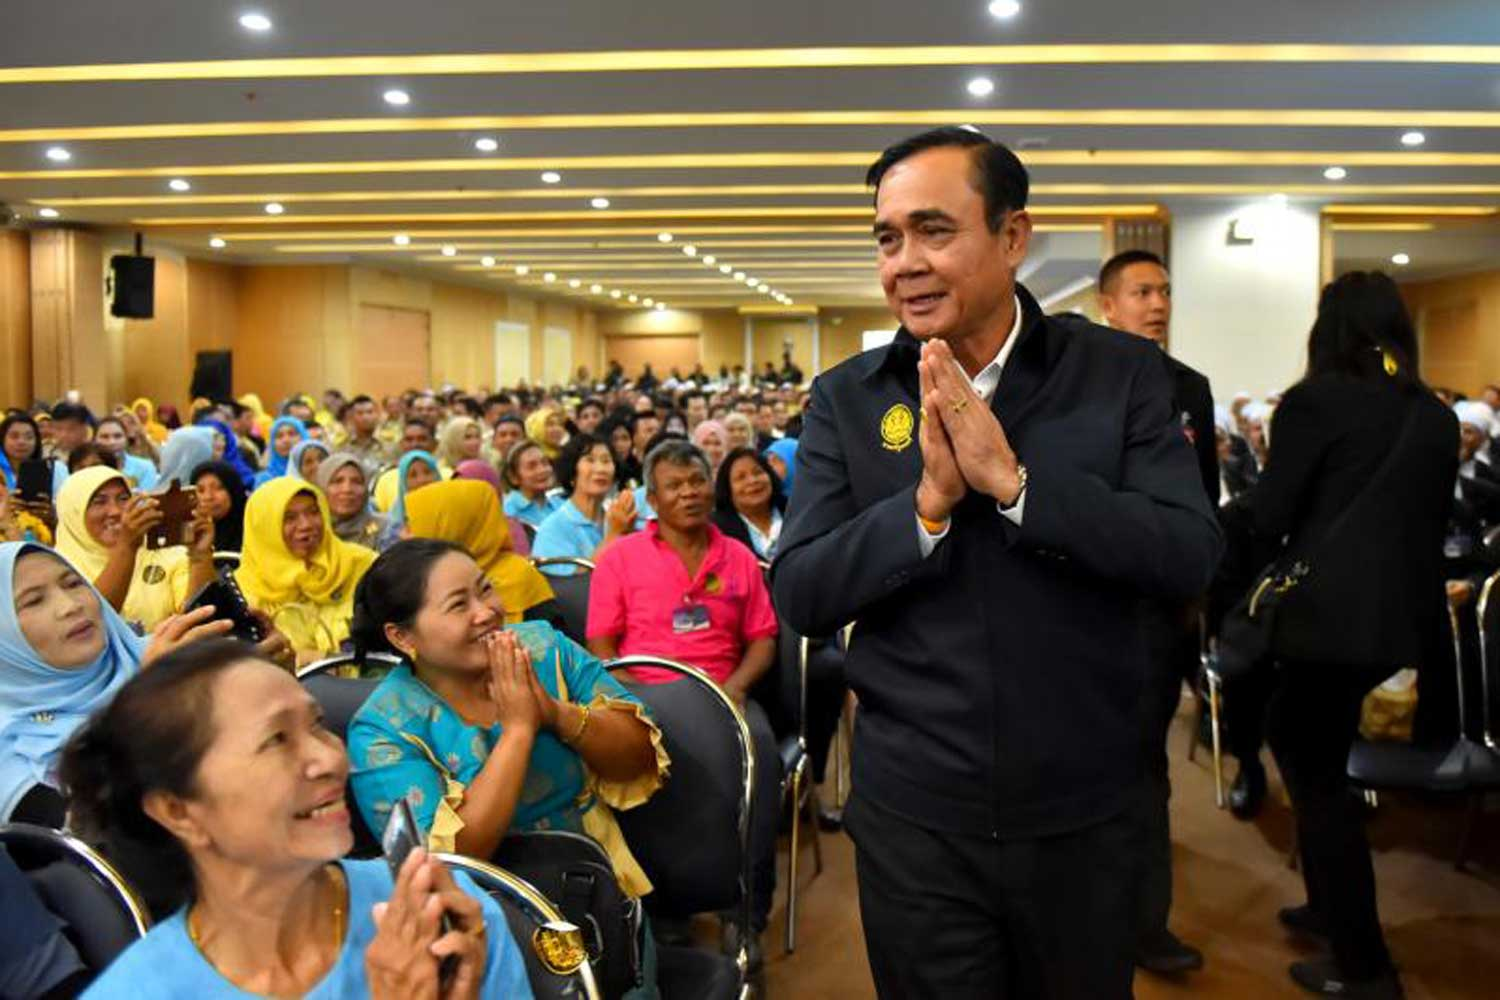 Prime Minister Prayut Chan-o-cha greets Yala residents during his visit to the southern border province on Wednesday. (Government House photo)